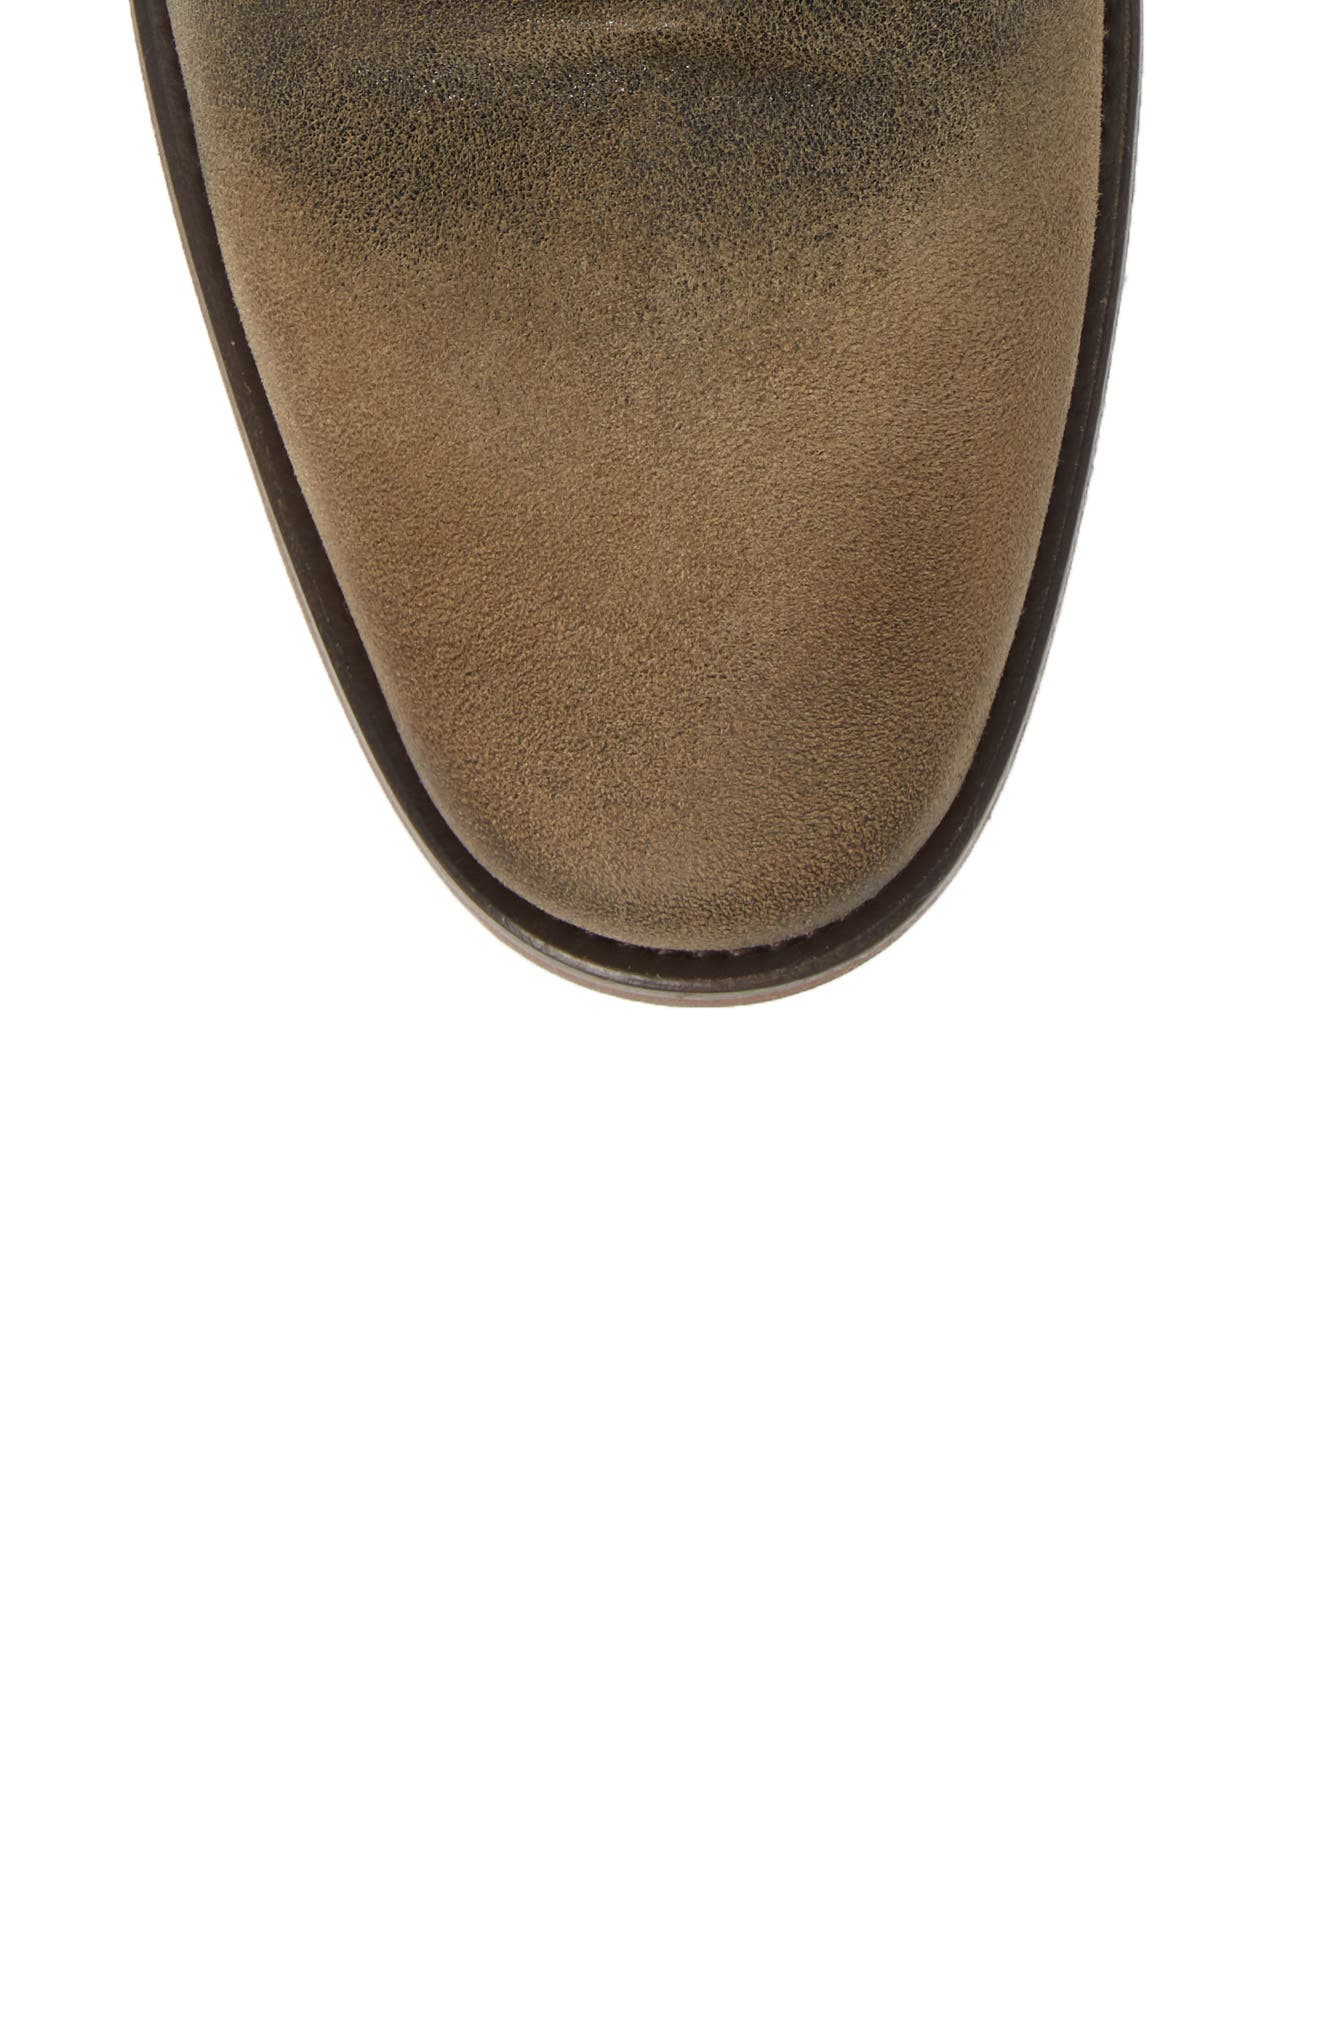 JOHN VARVATOS COLLECTION, Fleetwood Chelsea Boot, Alternate thumbnail 5, color, 237